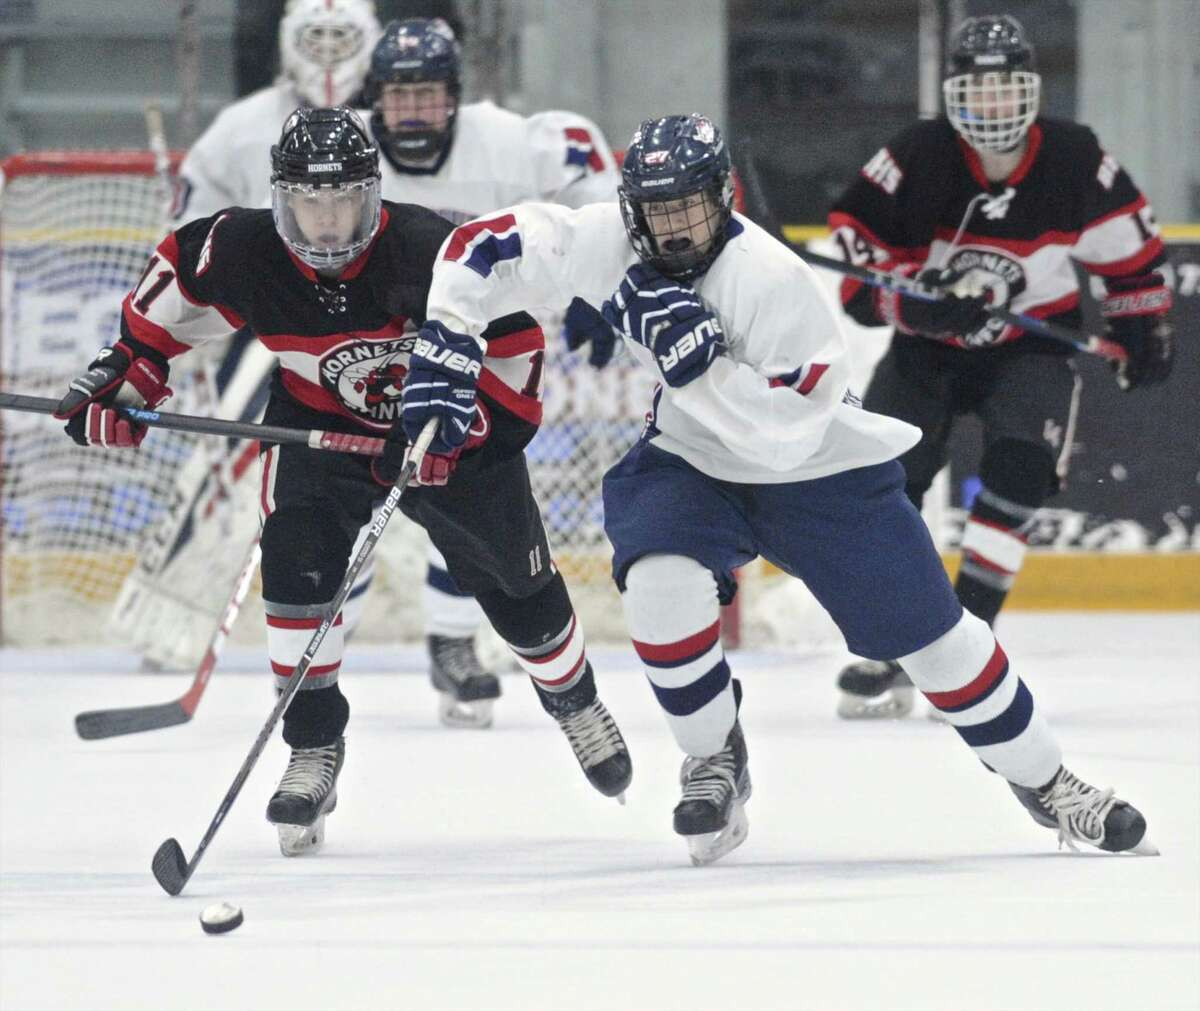 NFI's Zack Conboy (27) races for the puck ahead of Branford's Jack Manware (11) in the boys high school hockey game between Branford and NFI (New Fairfield/Immaculate high schools), Wednesday, February 8, 2017, at Danbury Ice Arena, in Danbury, Conn..